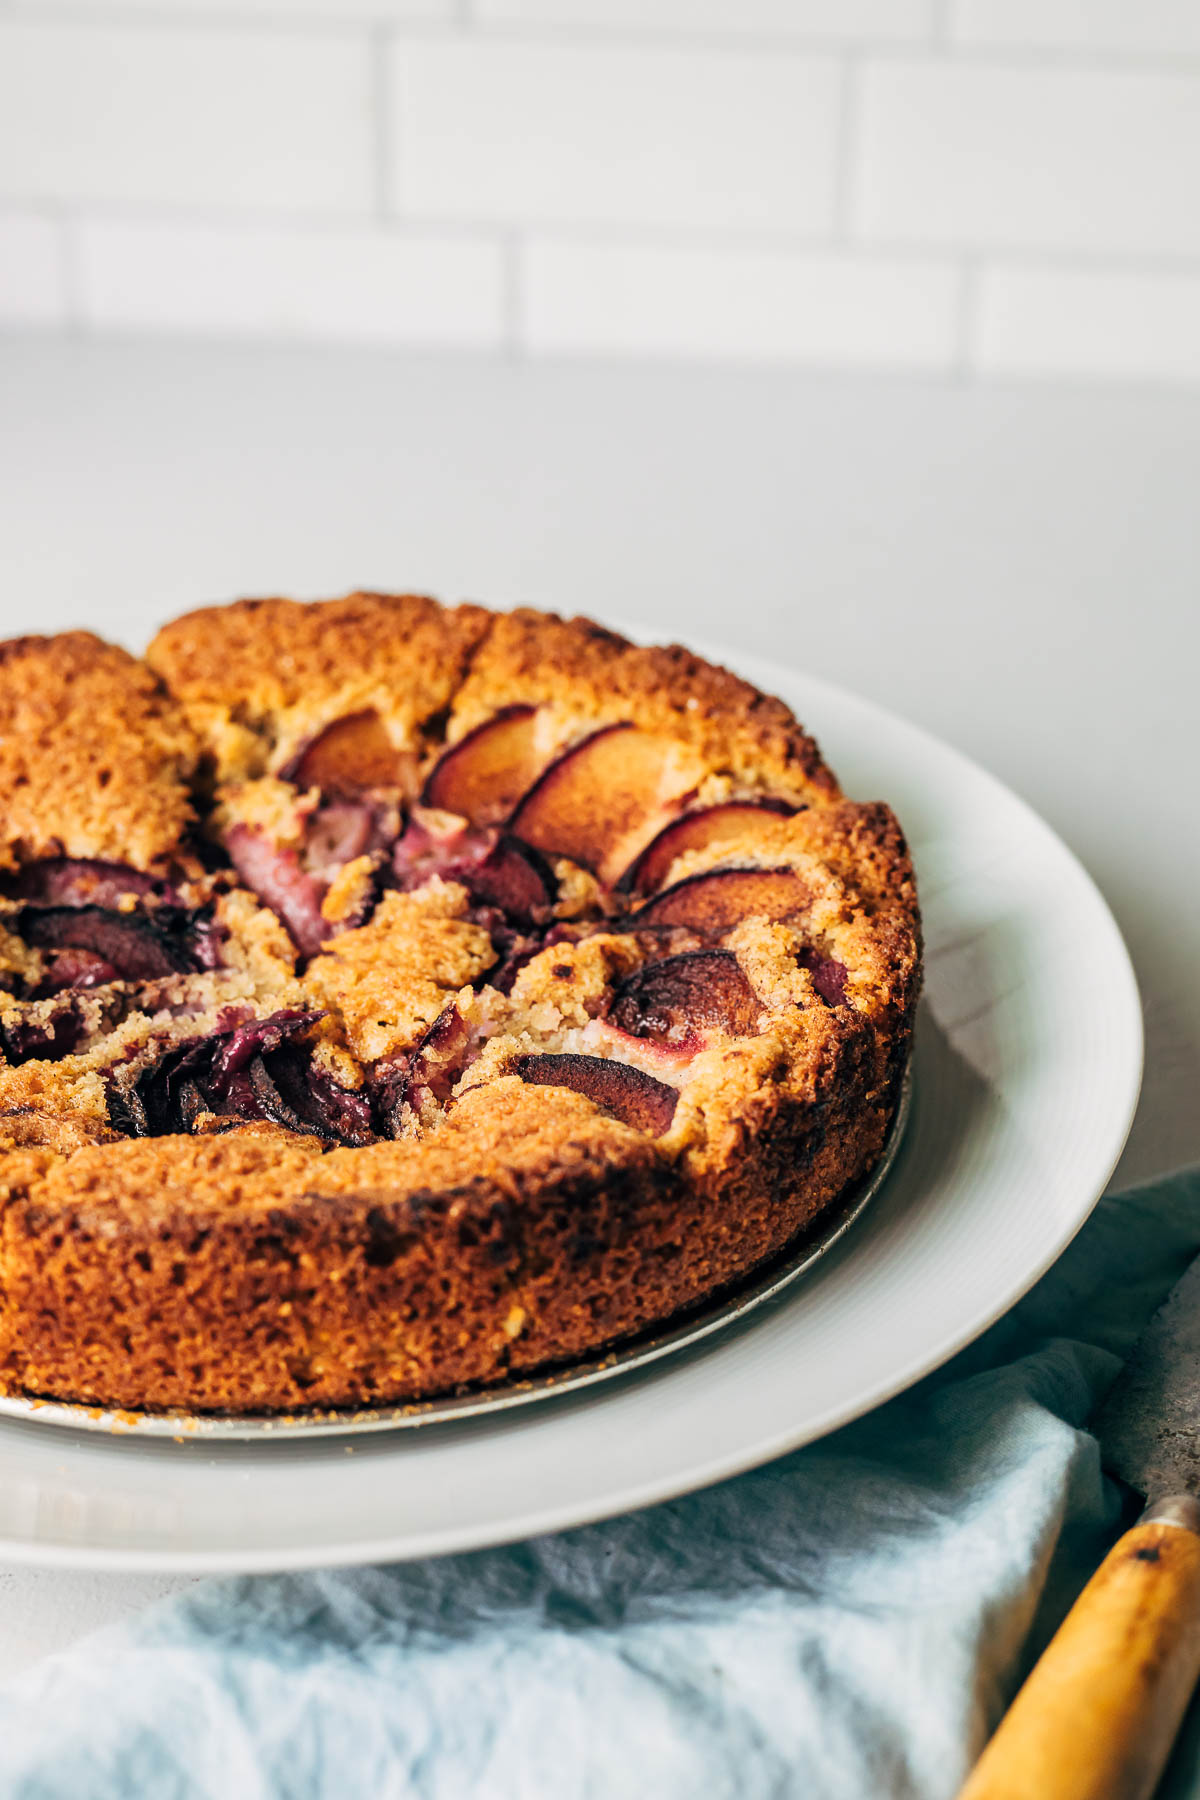 Partial shot of a gluten-free plum cake on a cake stand with a blue napkin underneath and a wood-handled knife.